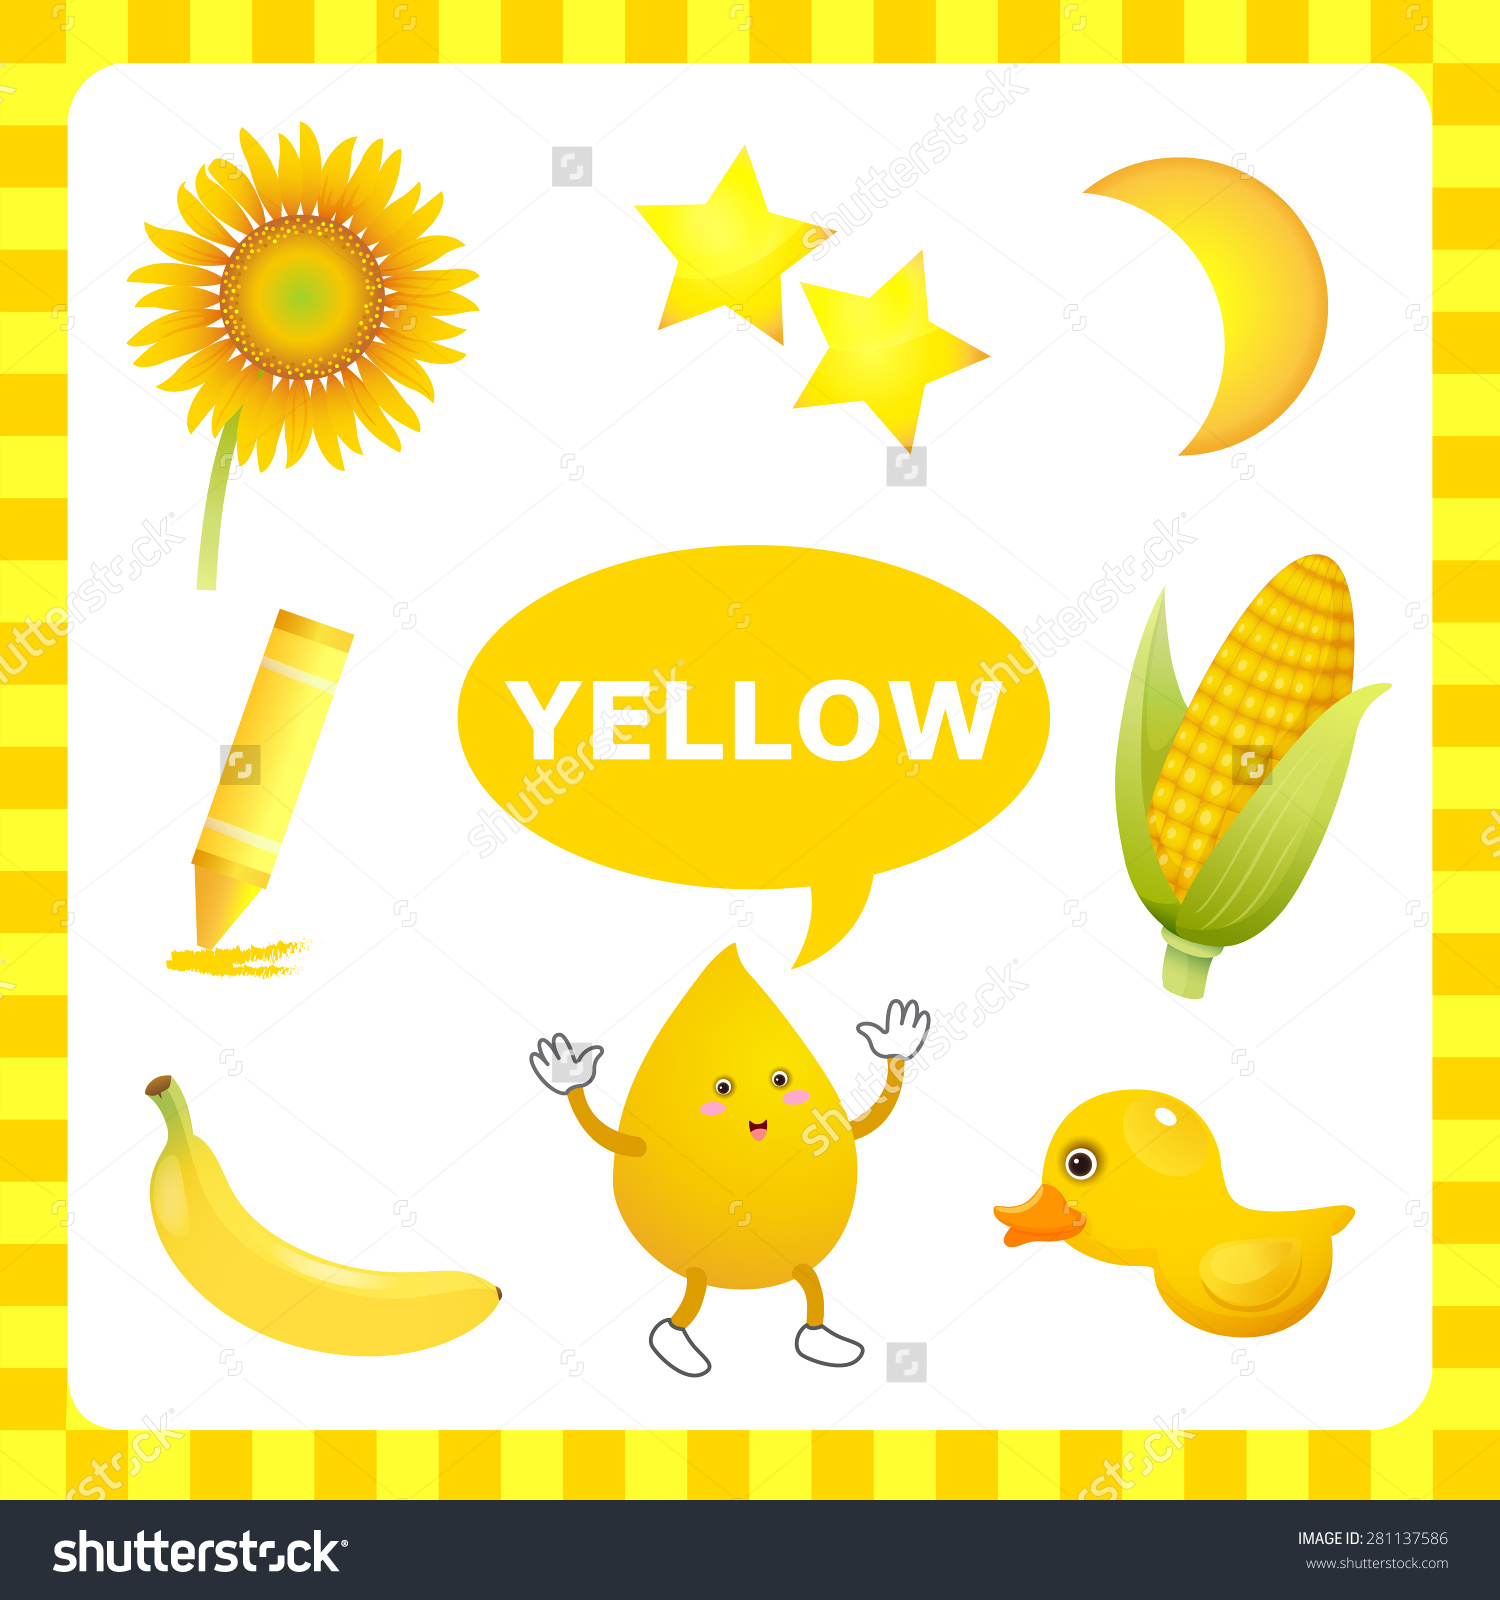 Learn Color Yellow Things That Yellow Stock Vector 281137586.